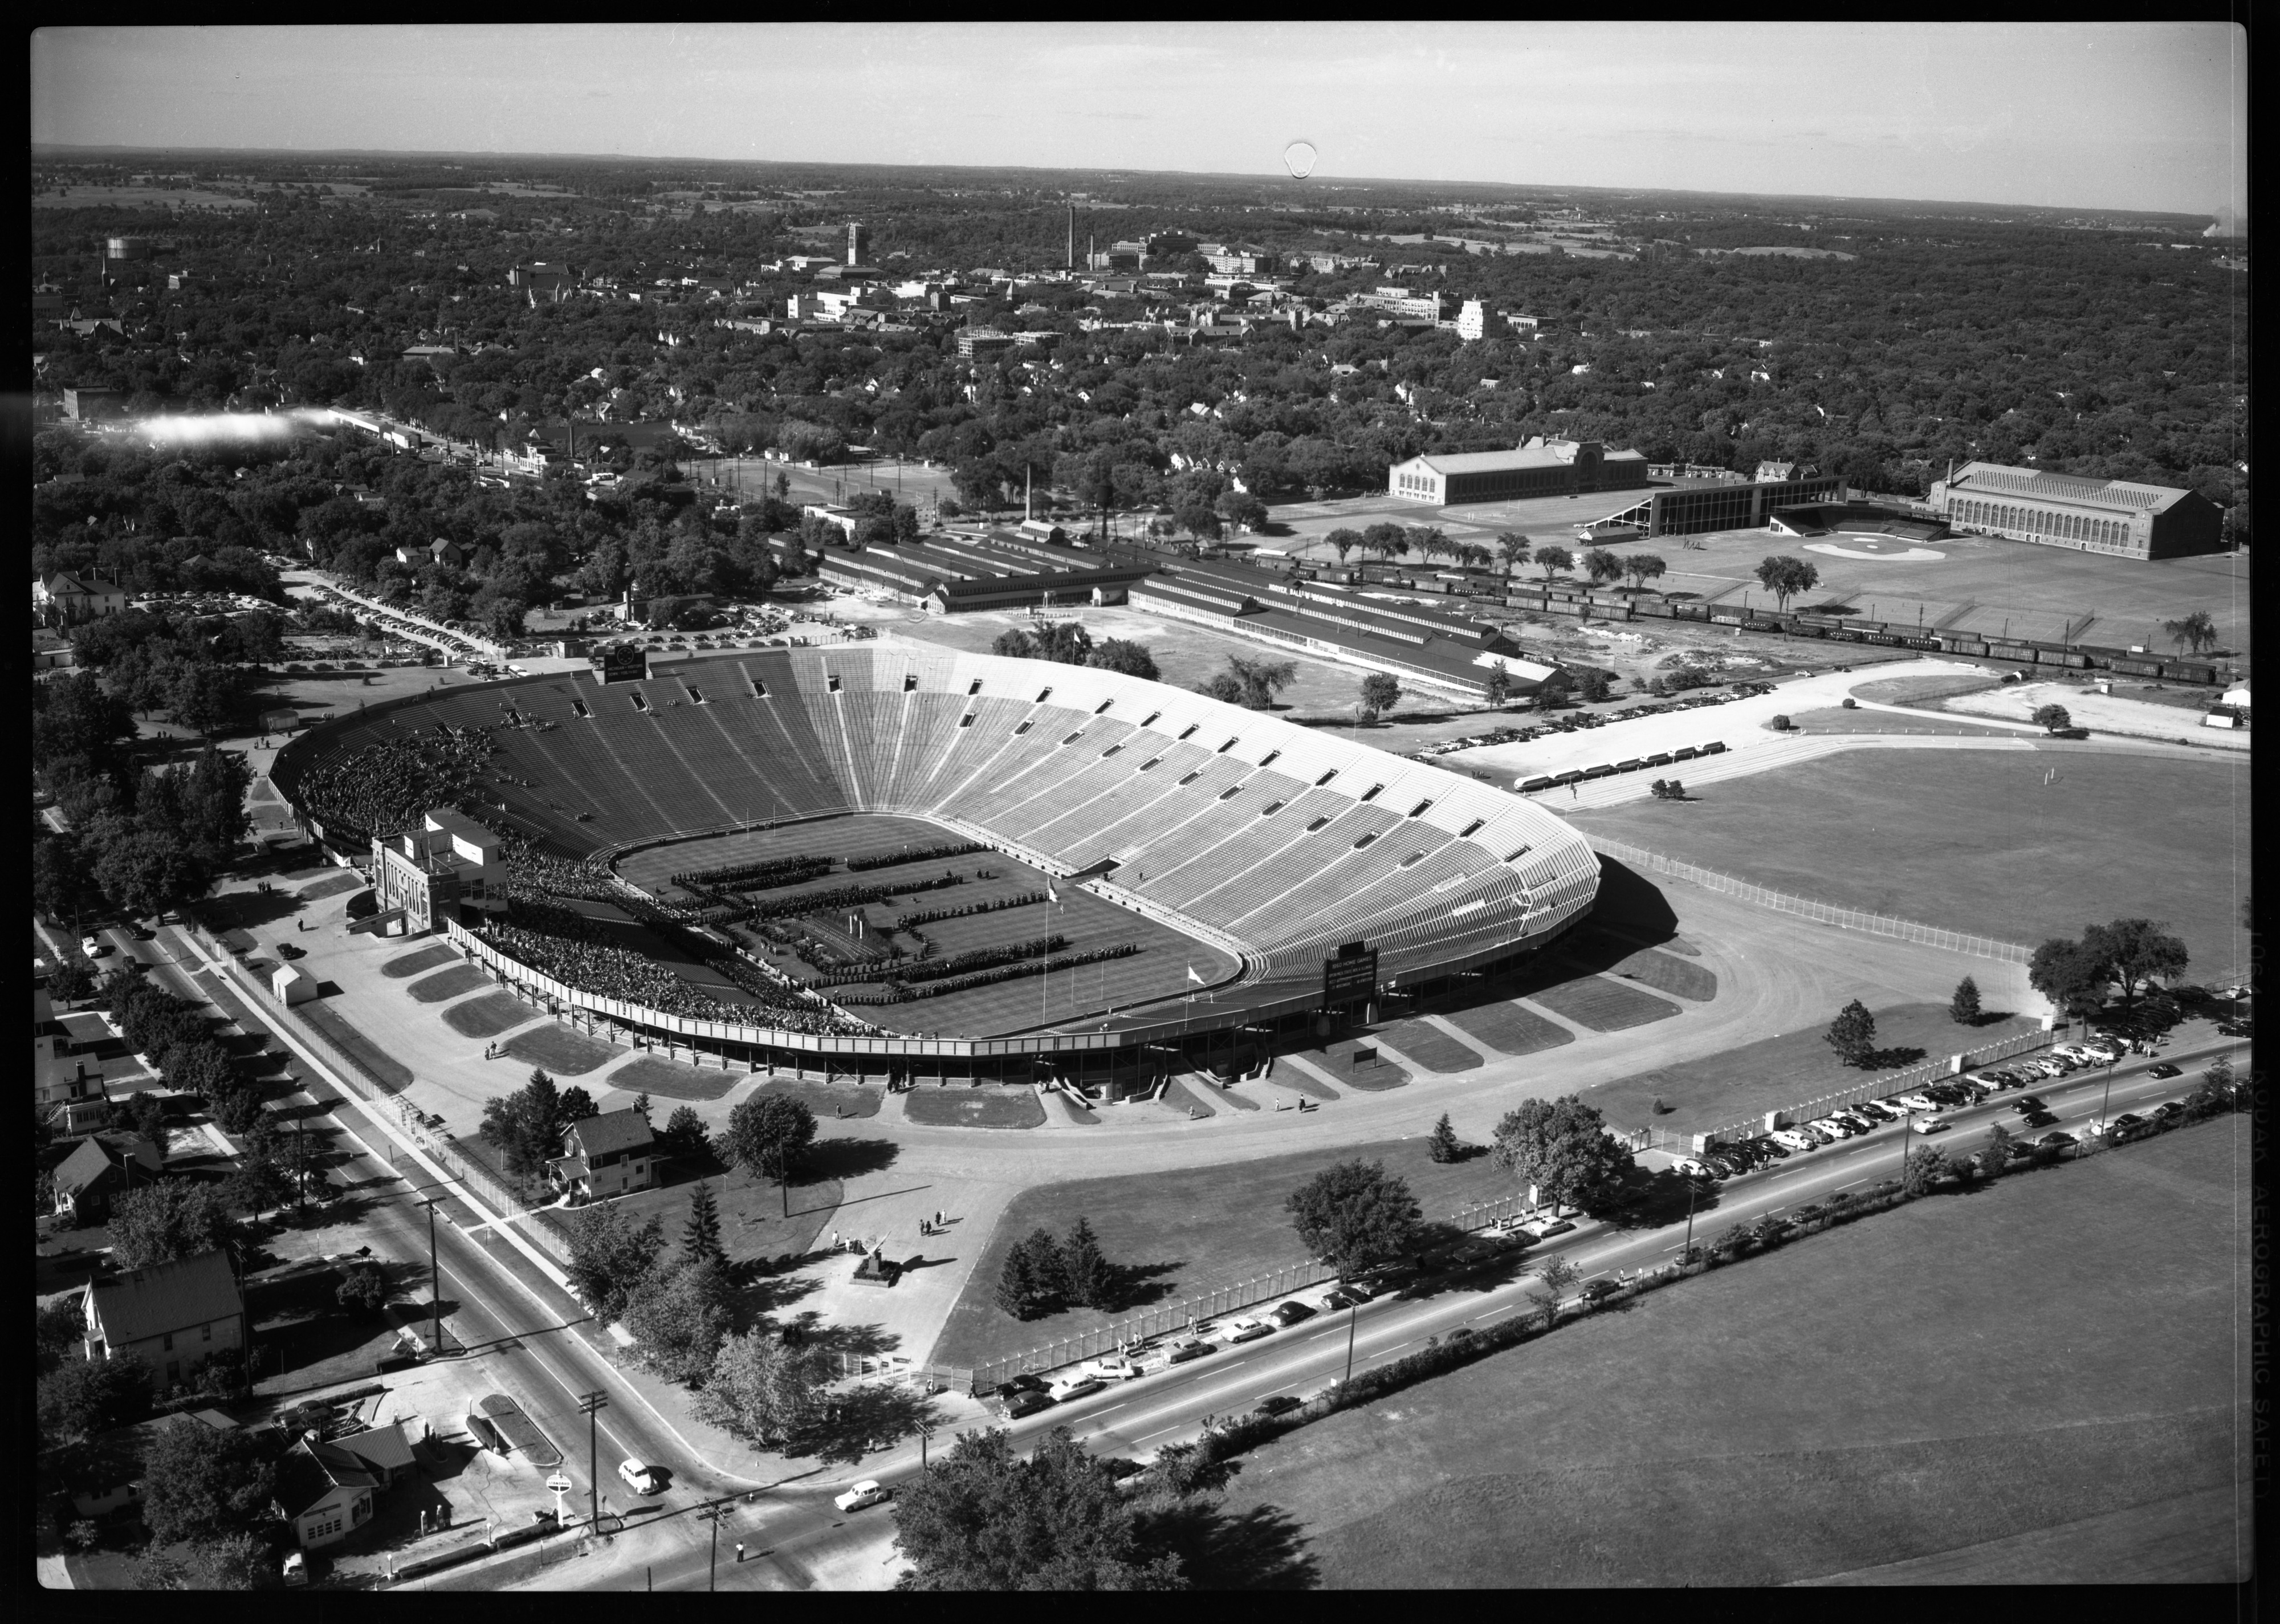 Aerial view of University of Michigan Graduation at Michigan Stadium, June 1950 image